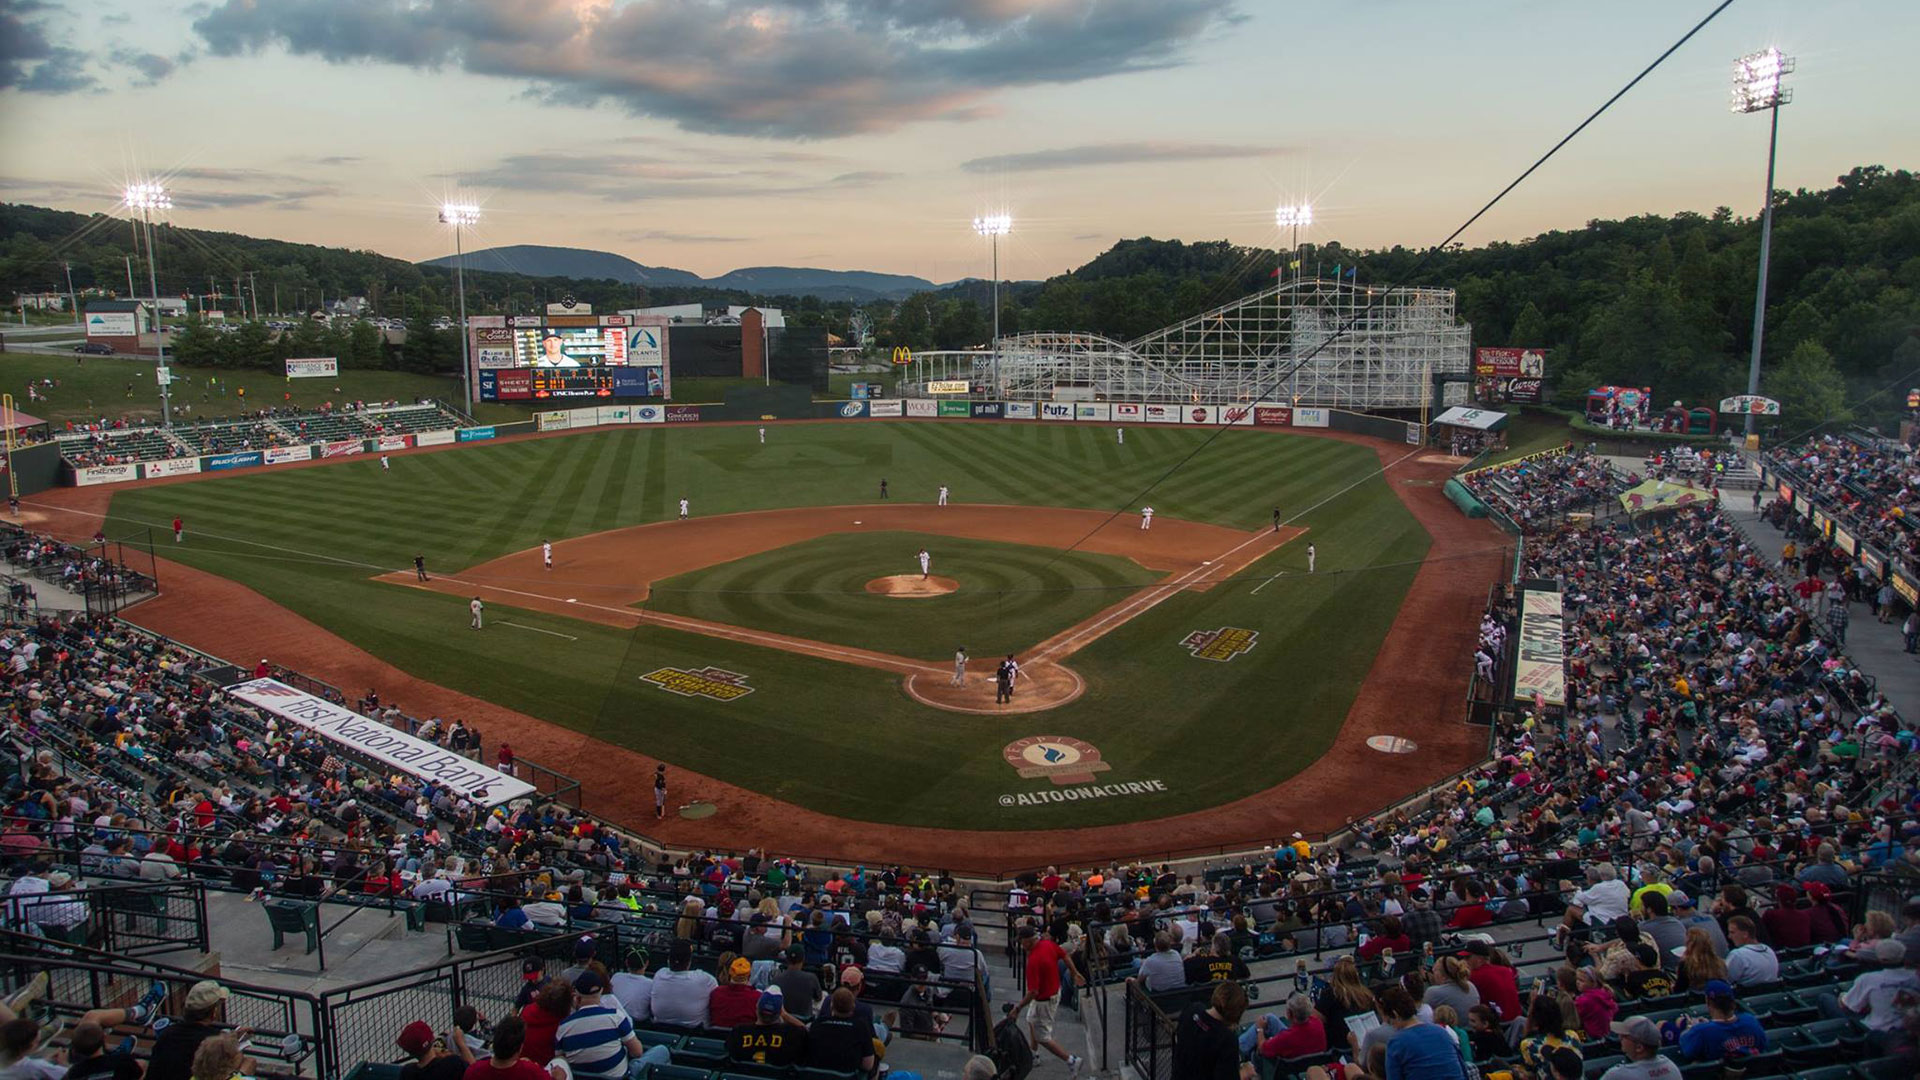 Photo of PNG Park field. Credit Altoona Curve.